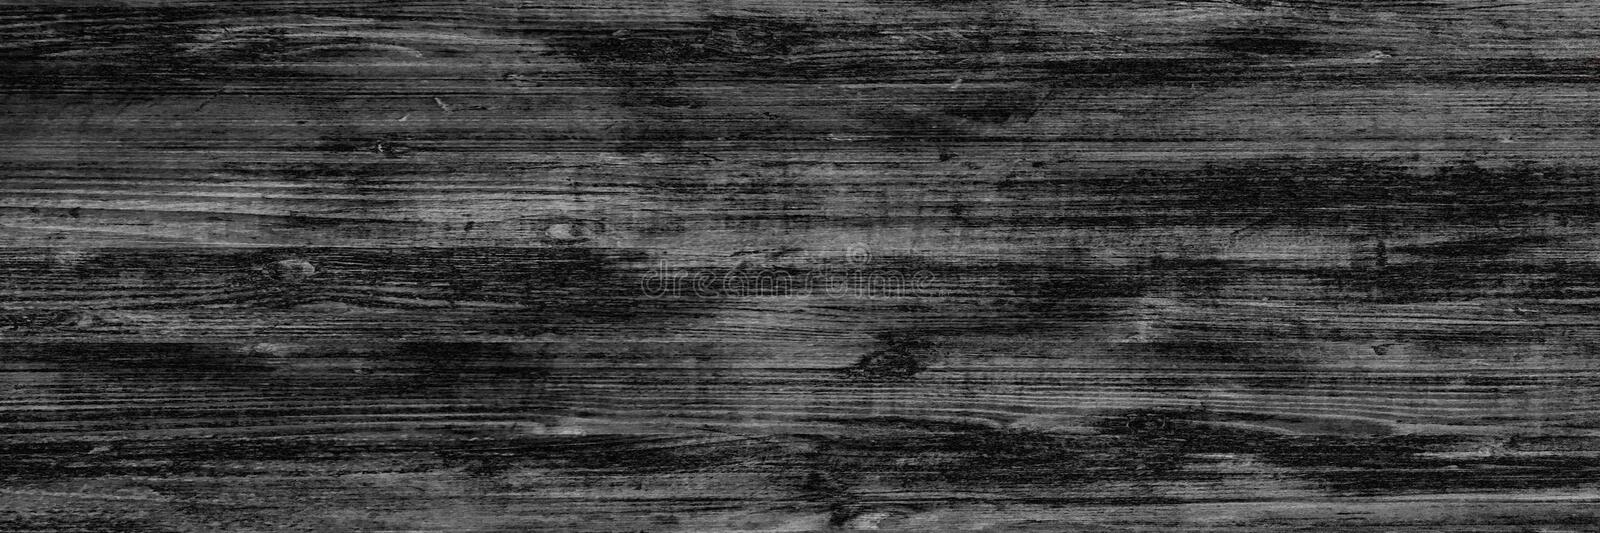 Wood black background, dark wooden abstract texture stock image